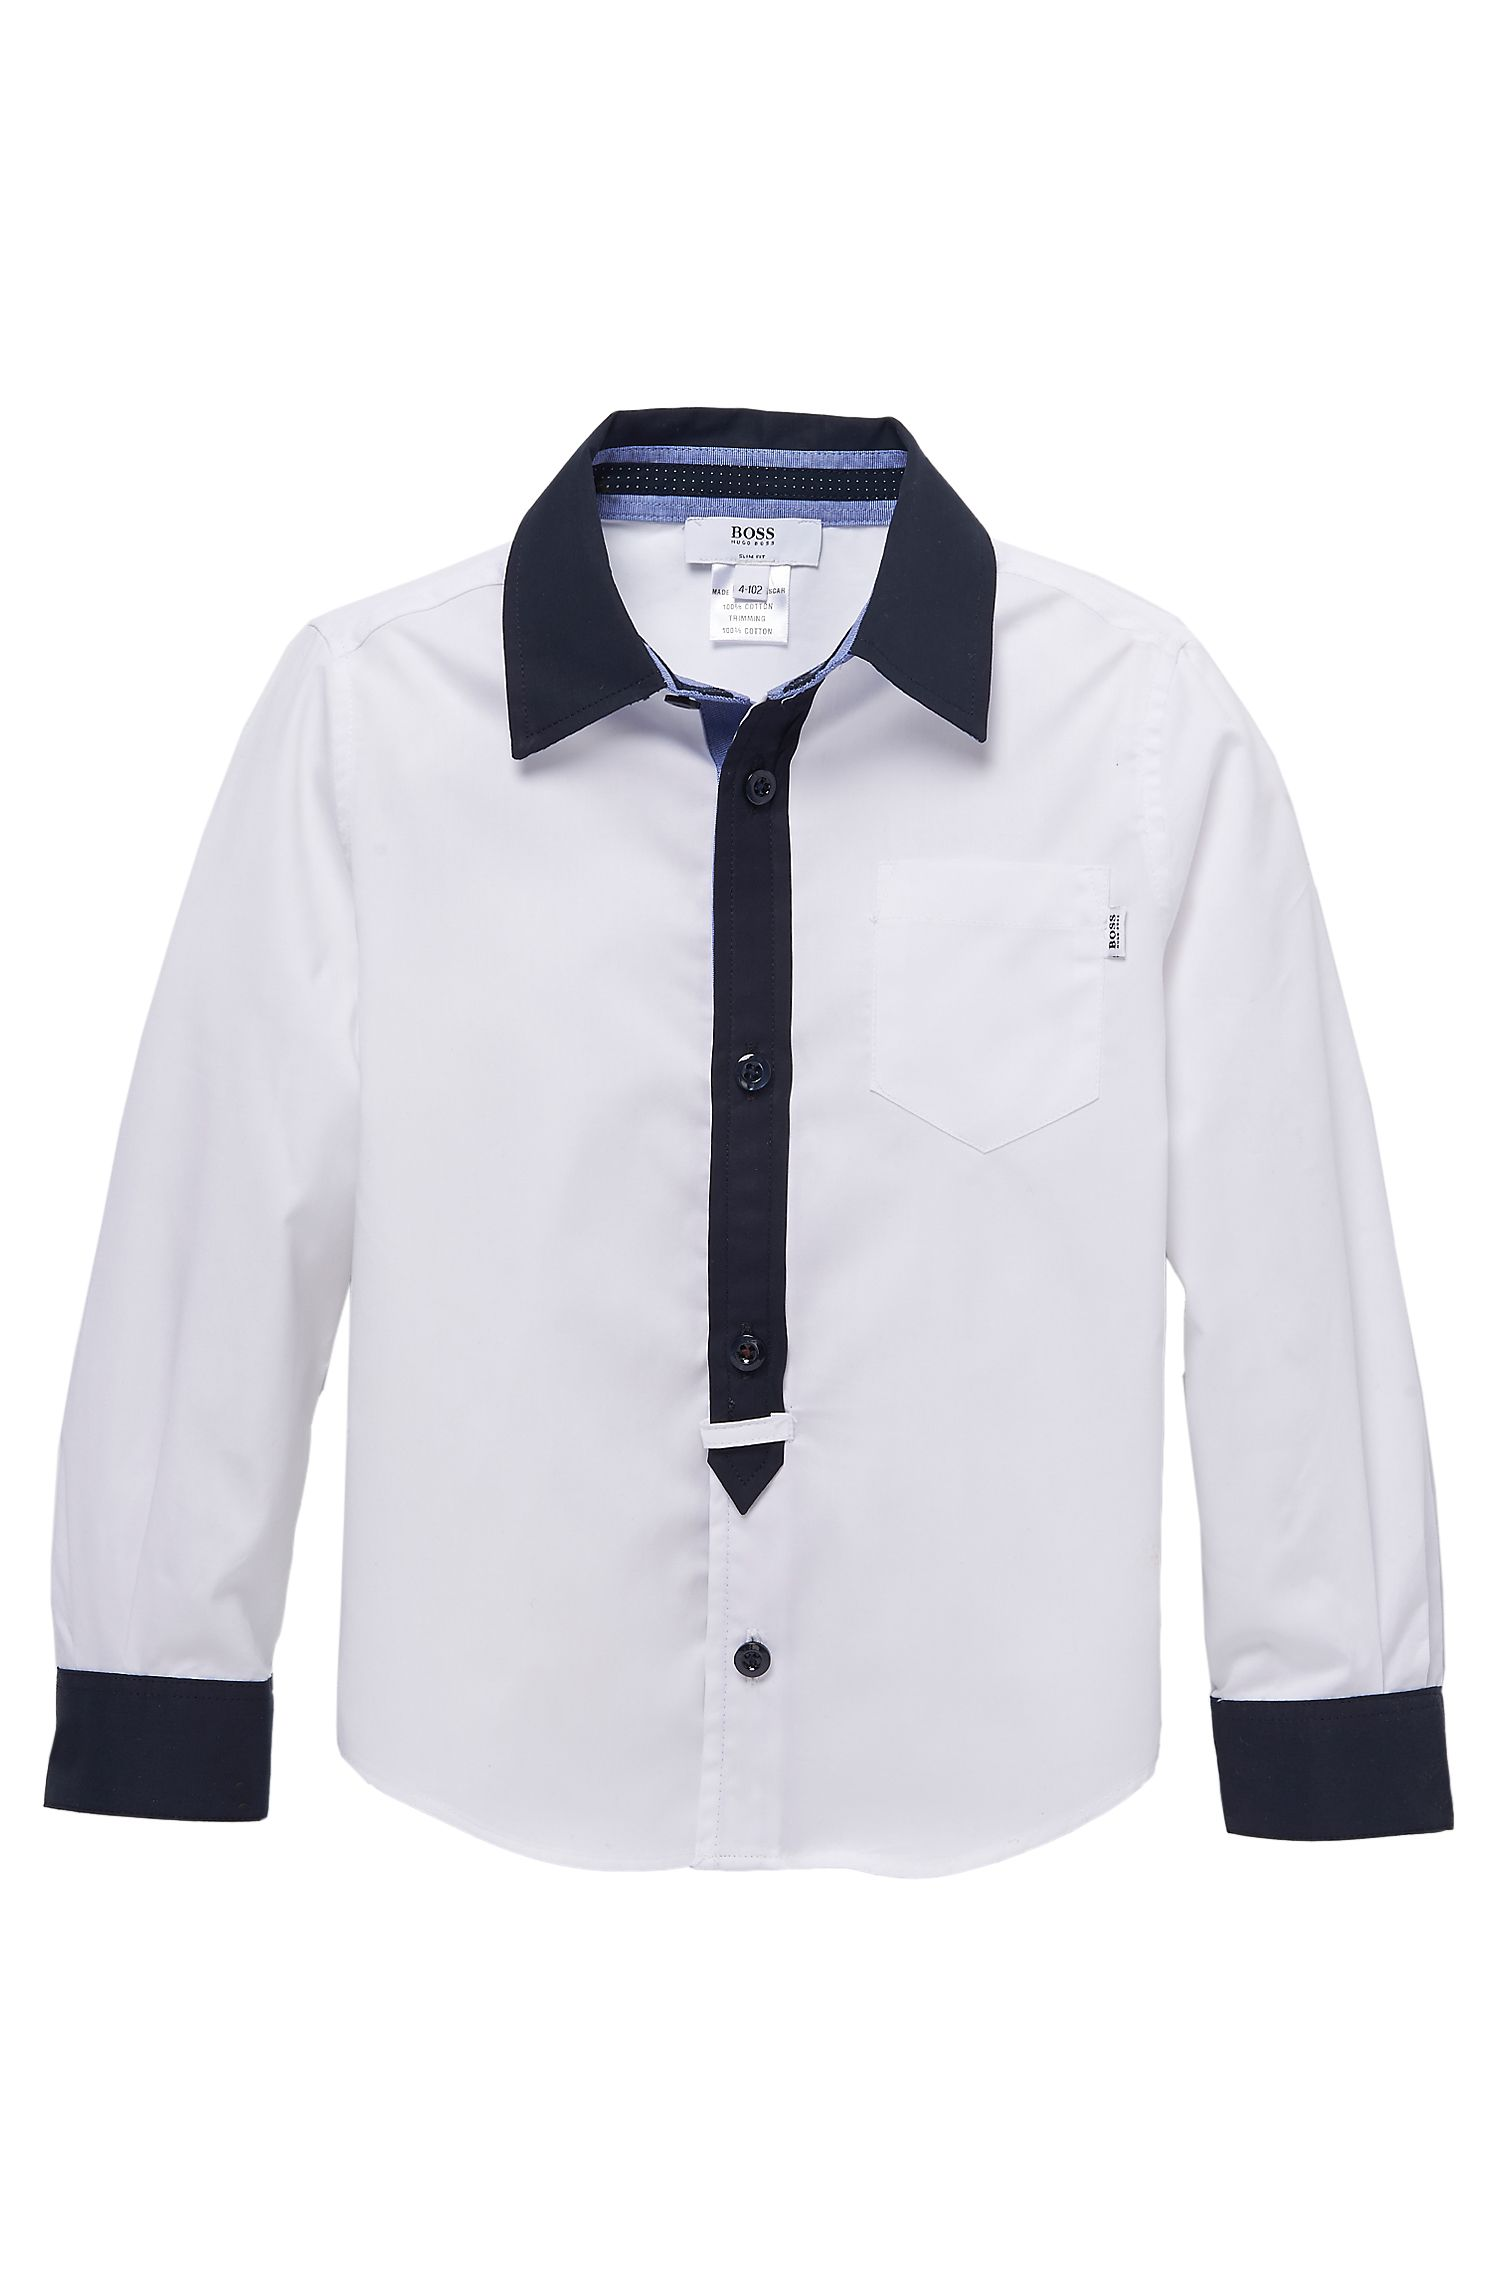 'J25644' | Boys Cotton Contrast Detail Button-Down Shirt with Elbow Patches